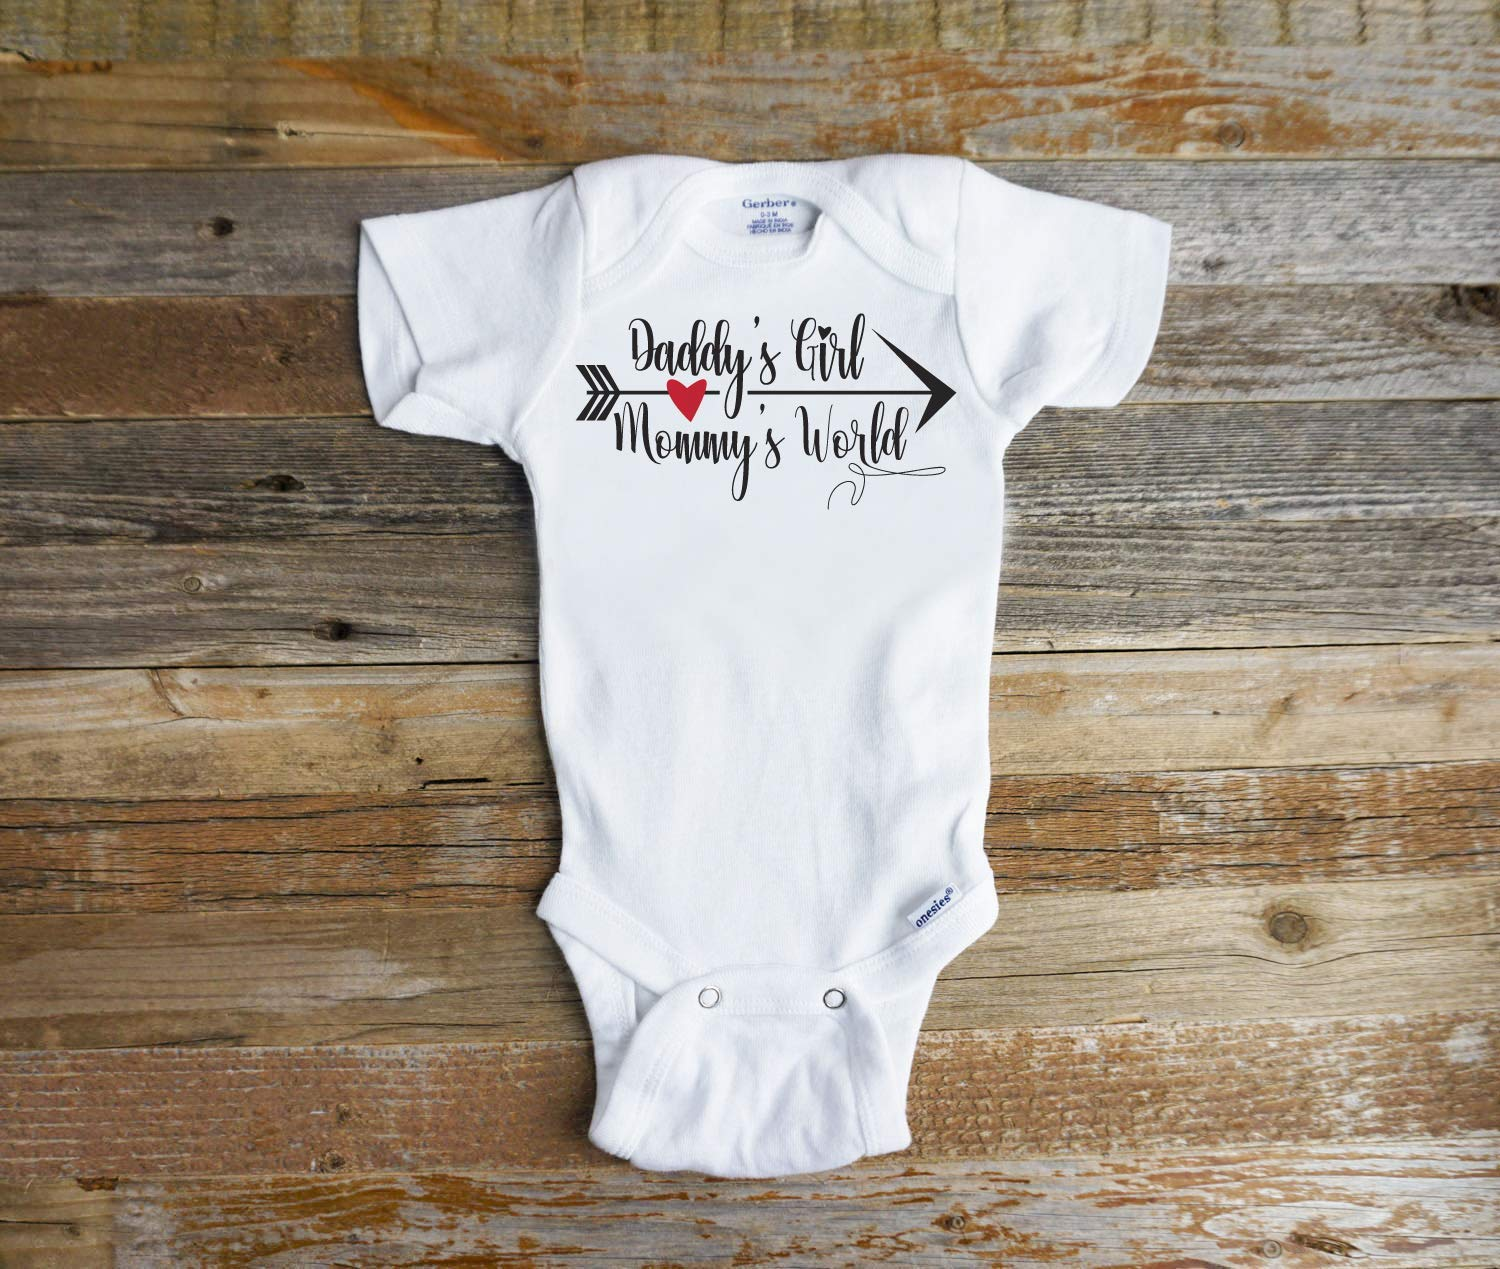 054cfd394 Daddy's Girl Mommy's world onesie or shirt [1541002967-255409] - $11.36